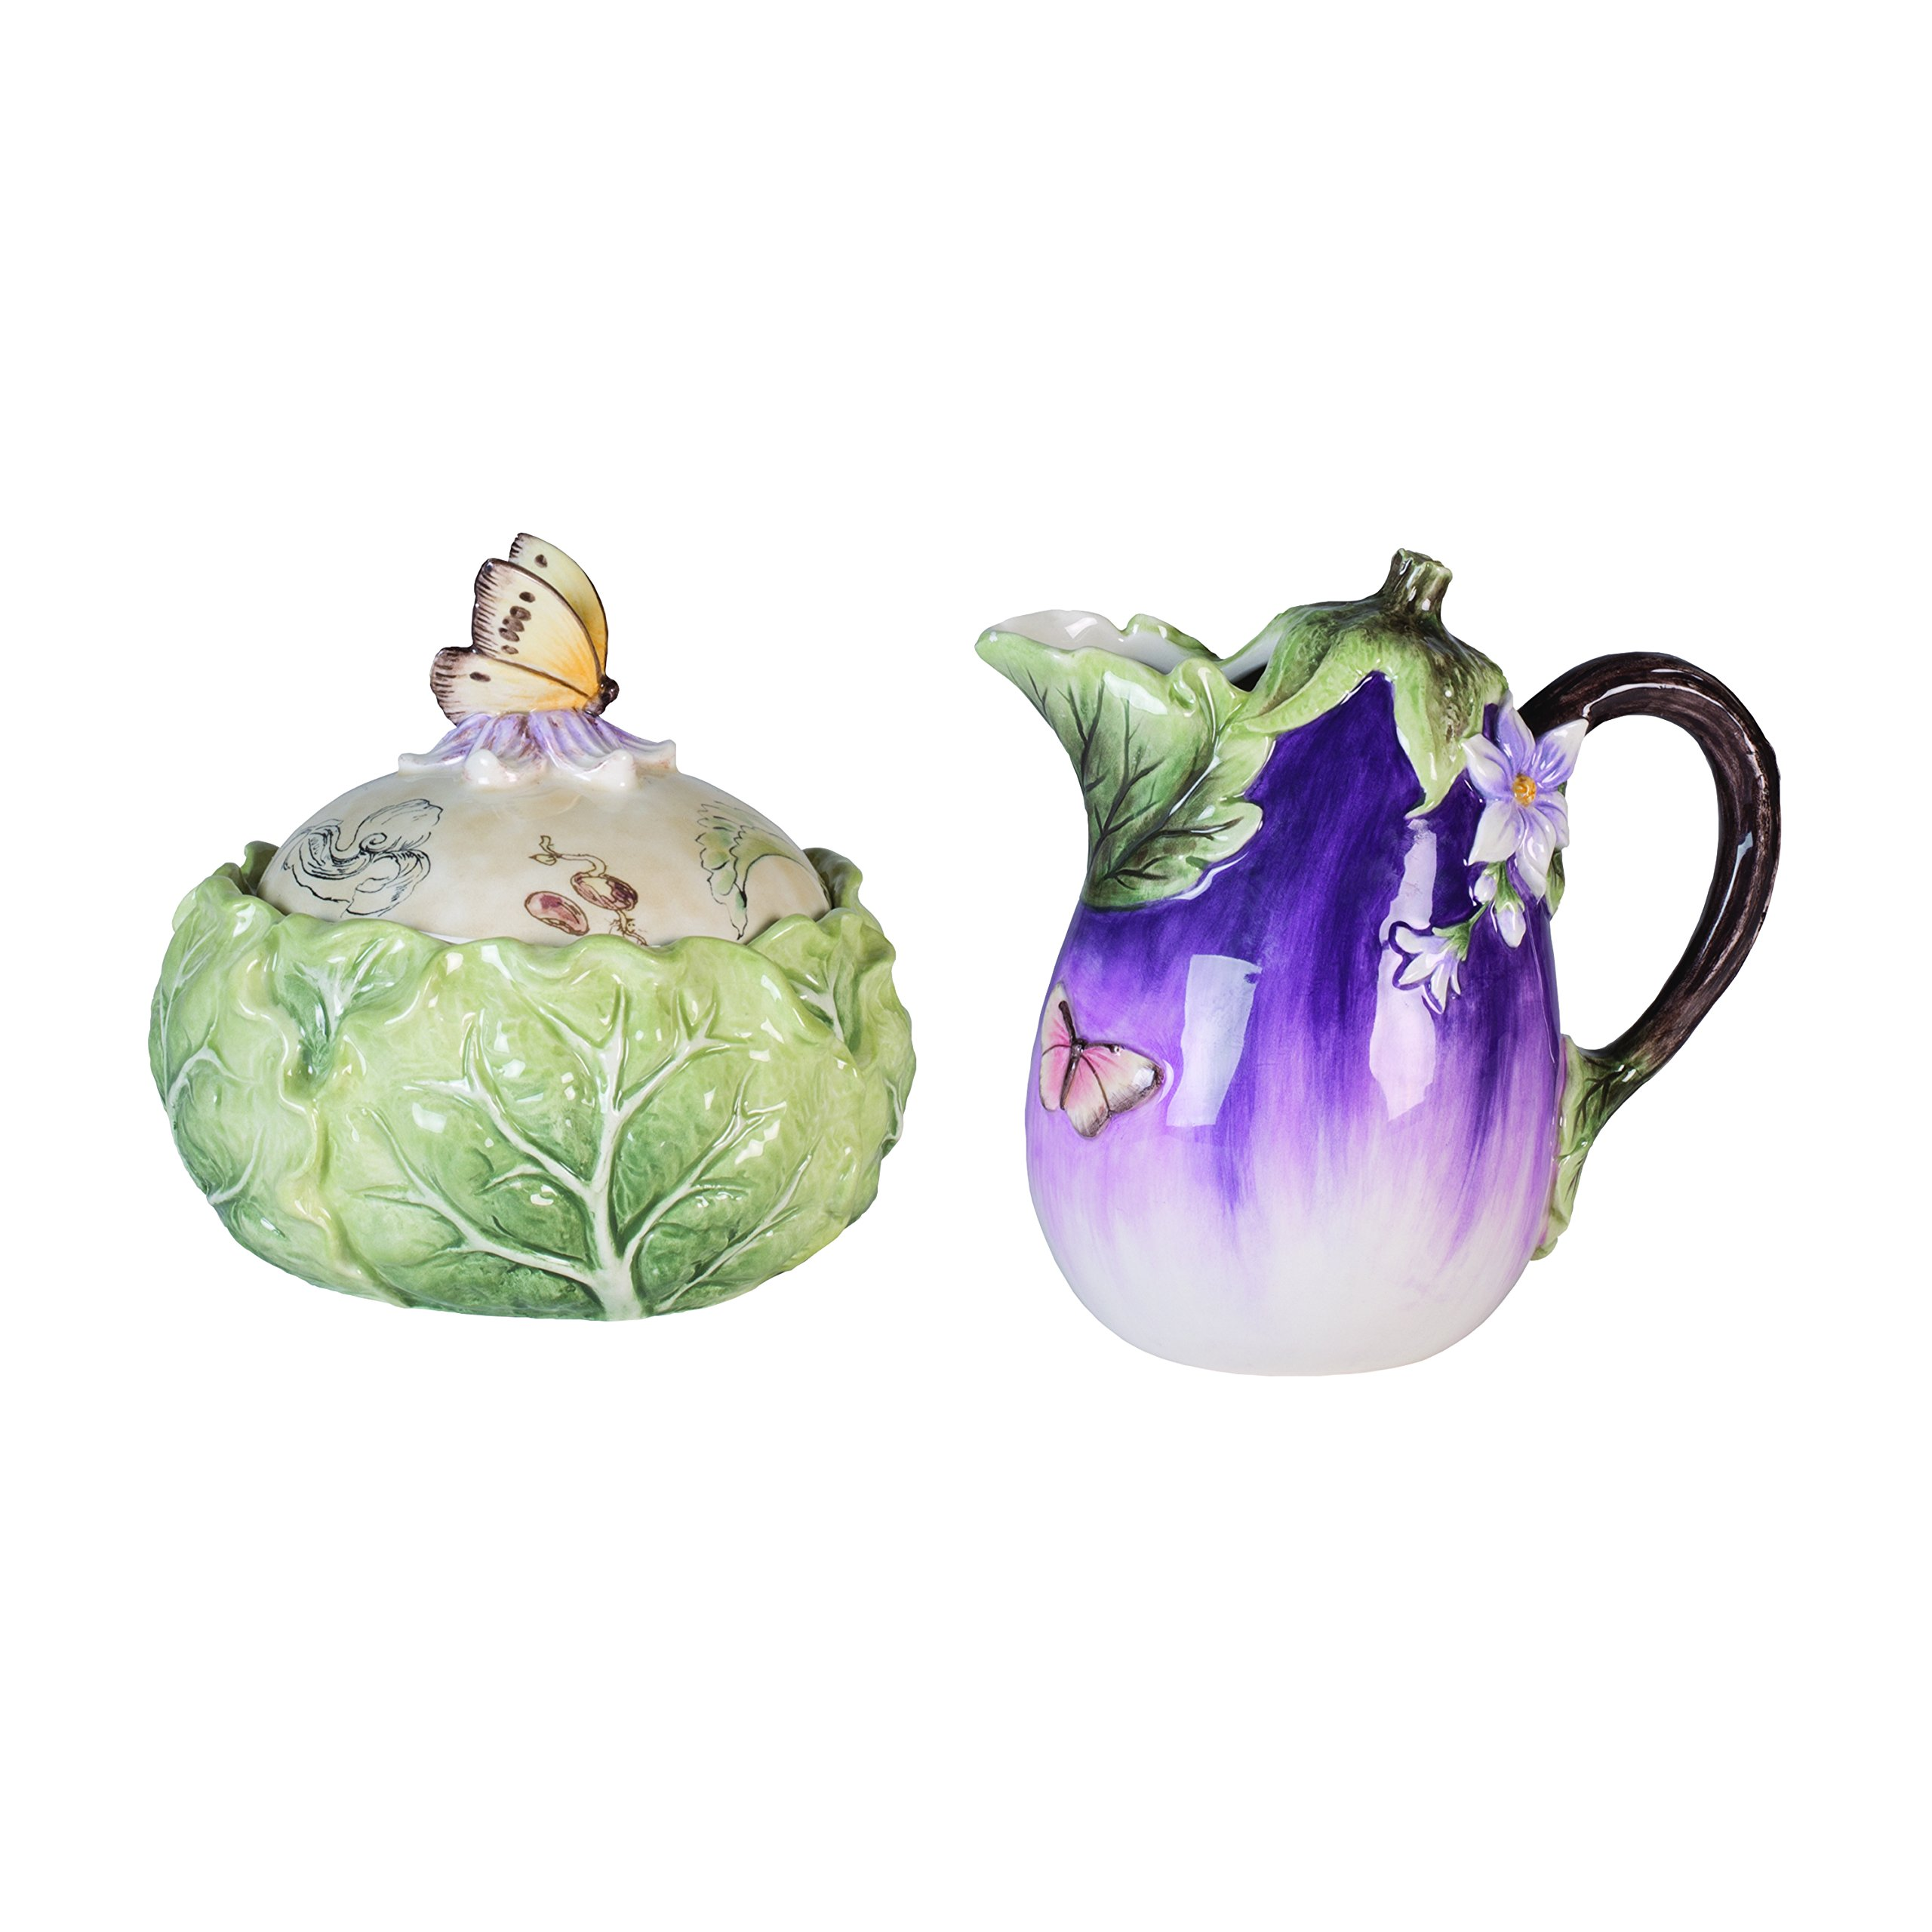 Fitz and Floyd 21-032 Fattoria sugar and creamer set, 5.8 x 5.8 x 5.5 inches, Green/Purple